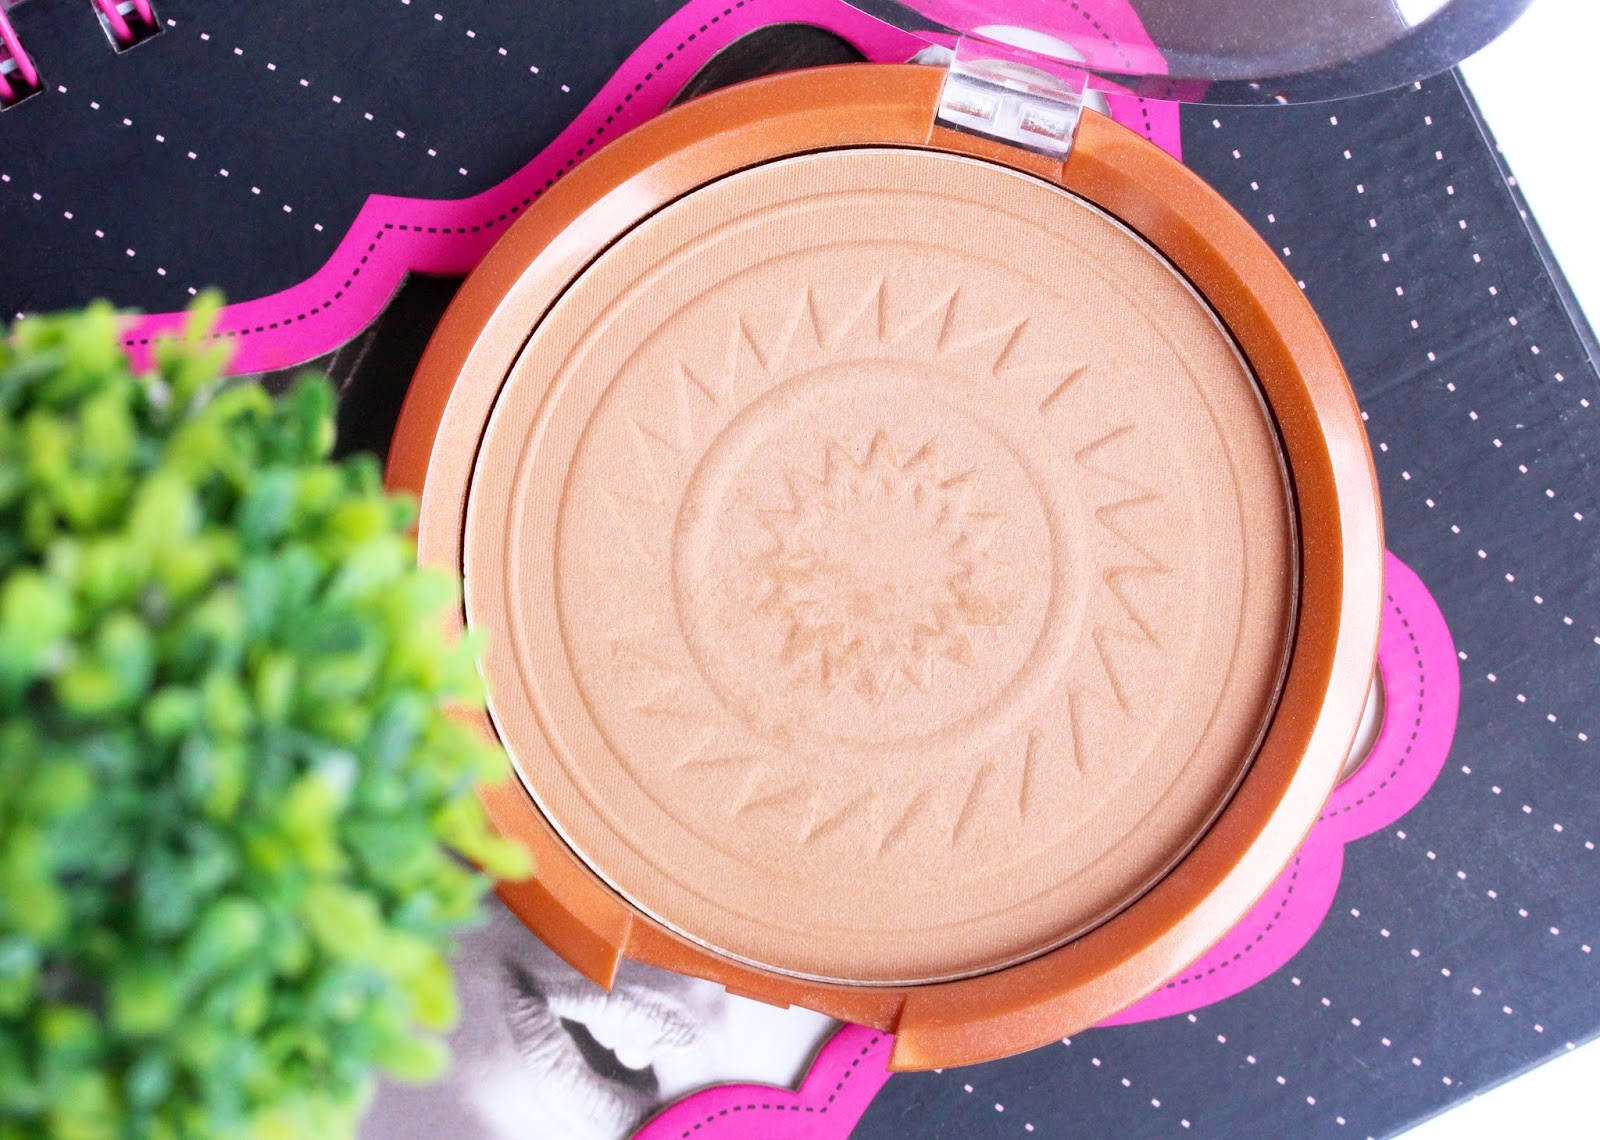 NYC Big Bold Bronzer in Manhatan